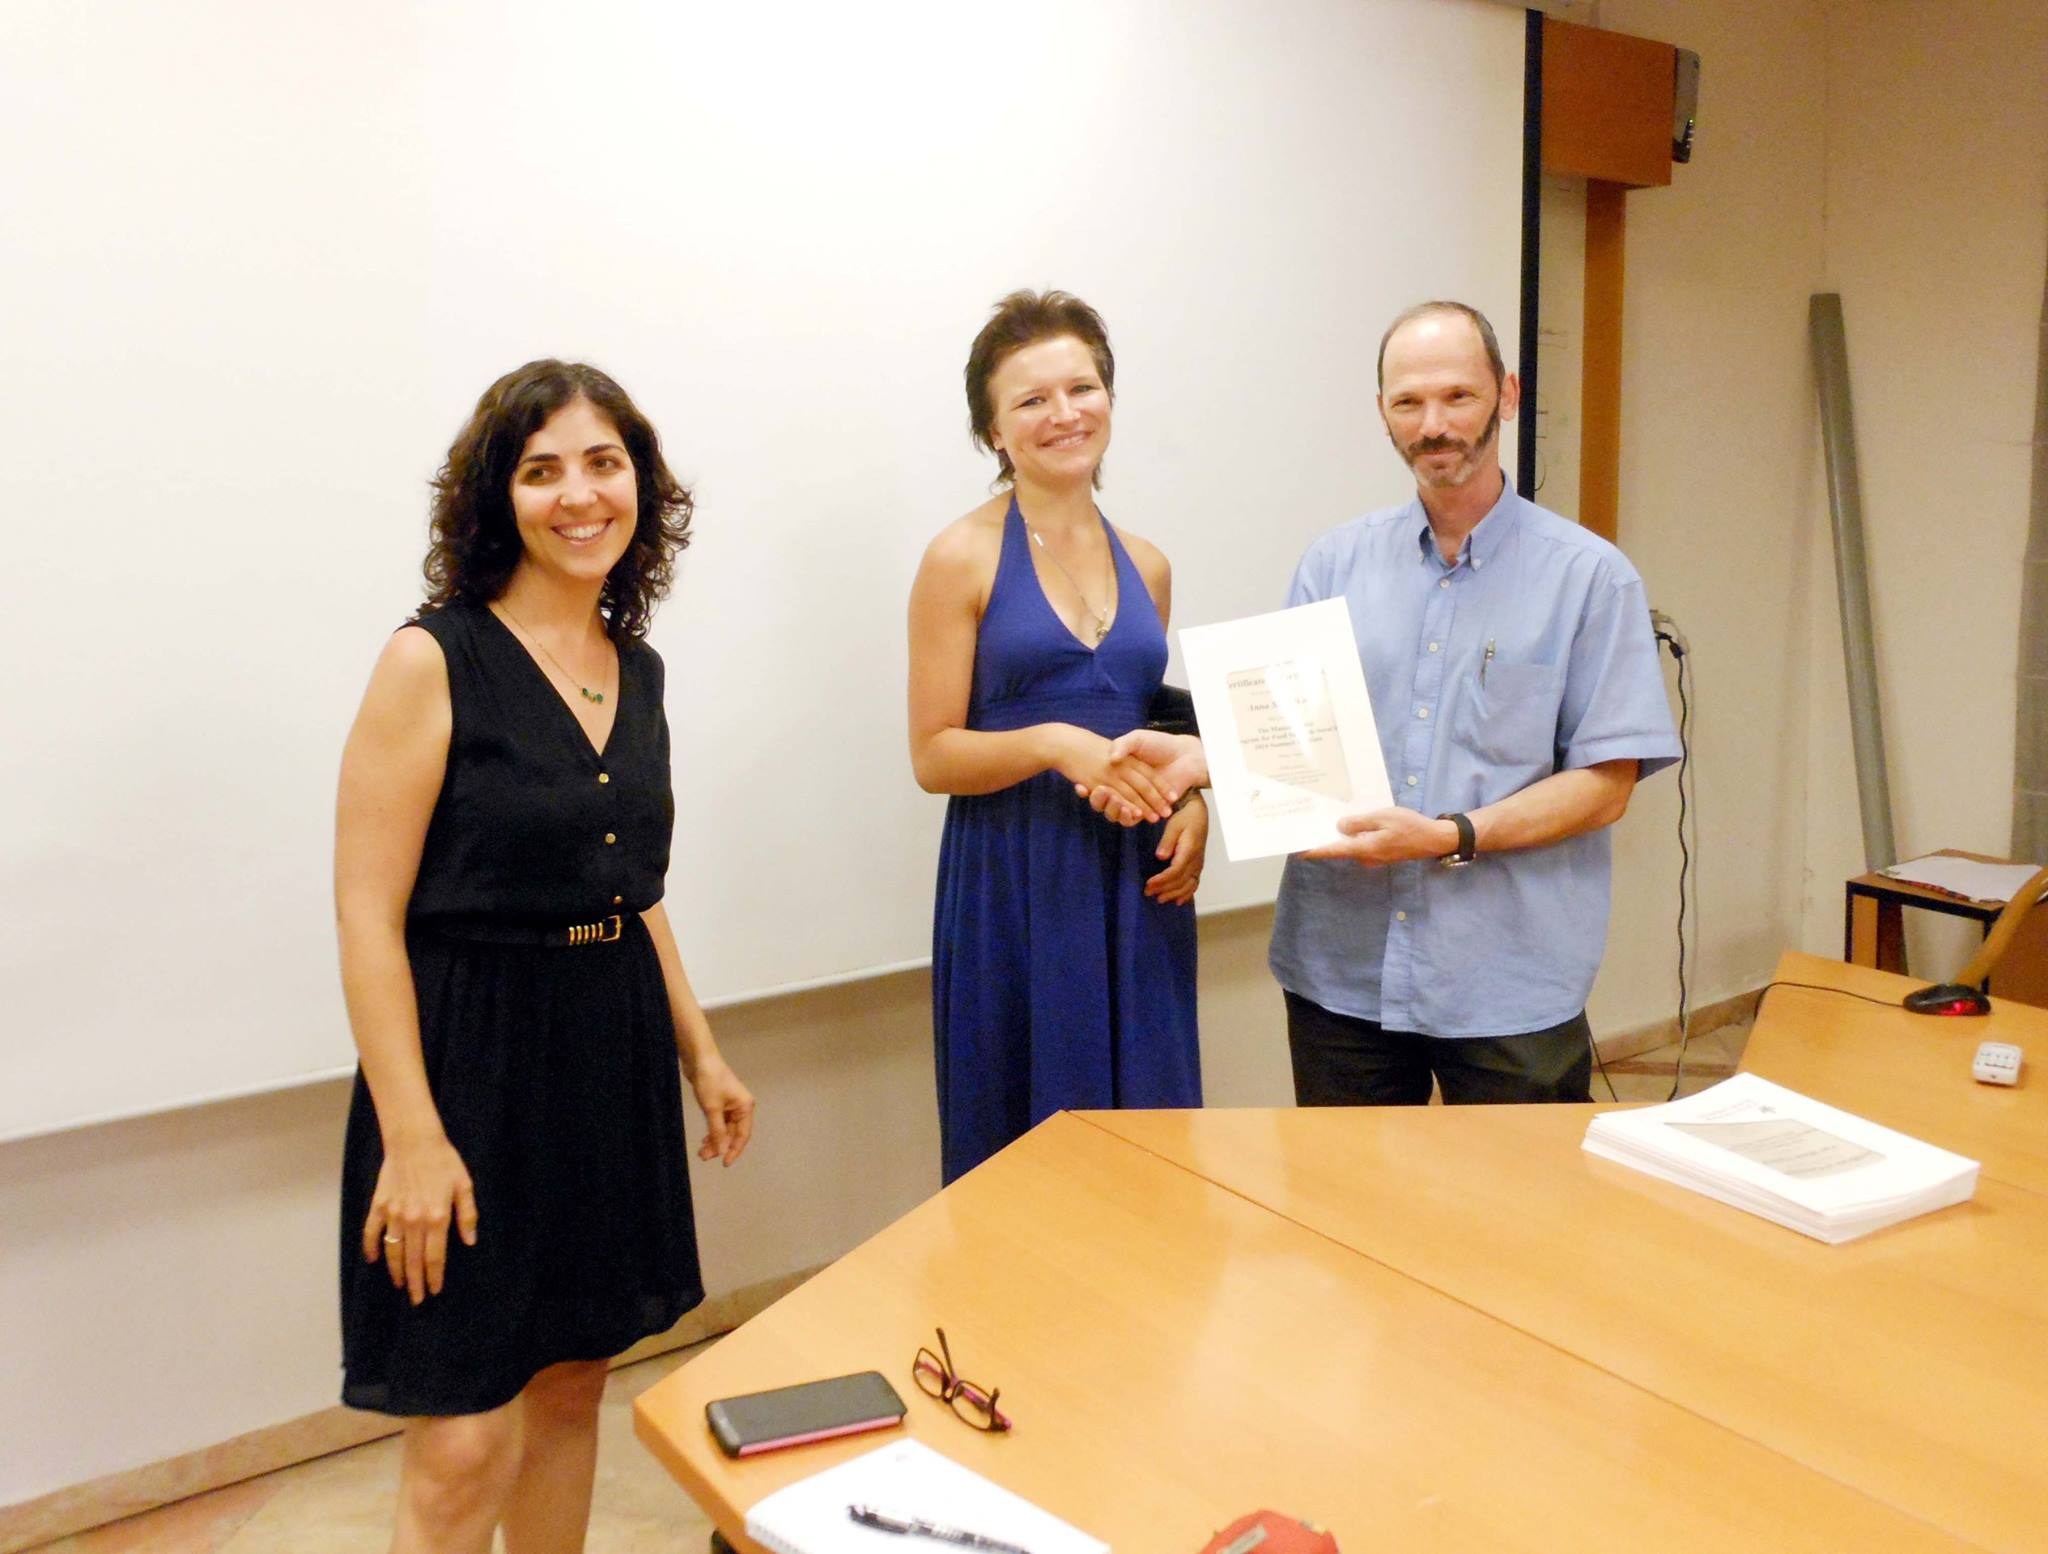 Anna Shmelkova receives her diploma from the program director, Prof. Nir Ohad